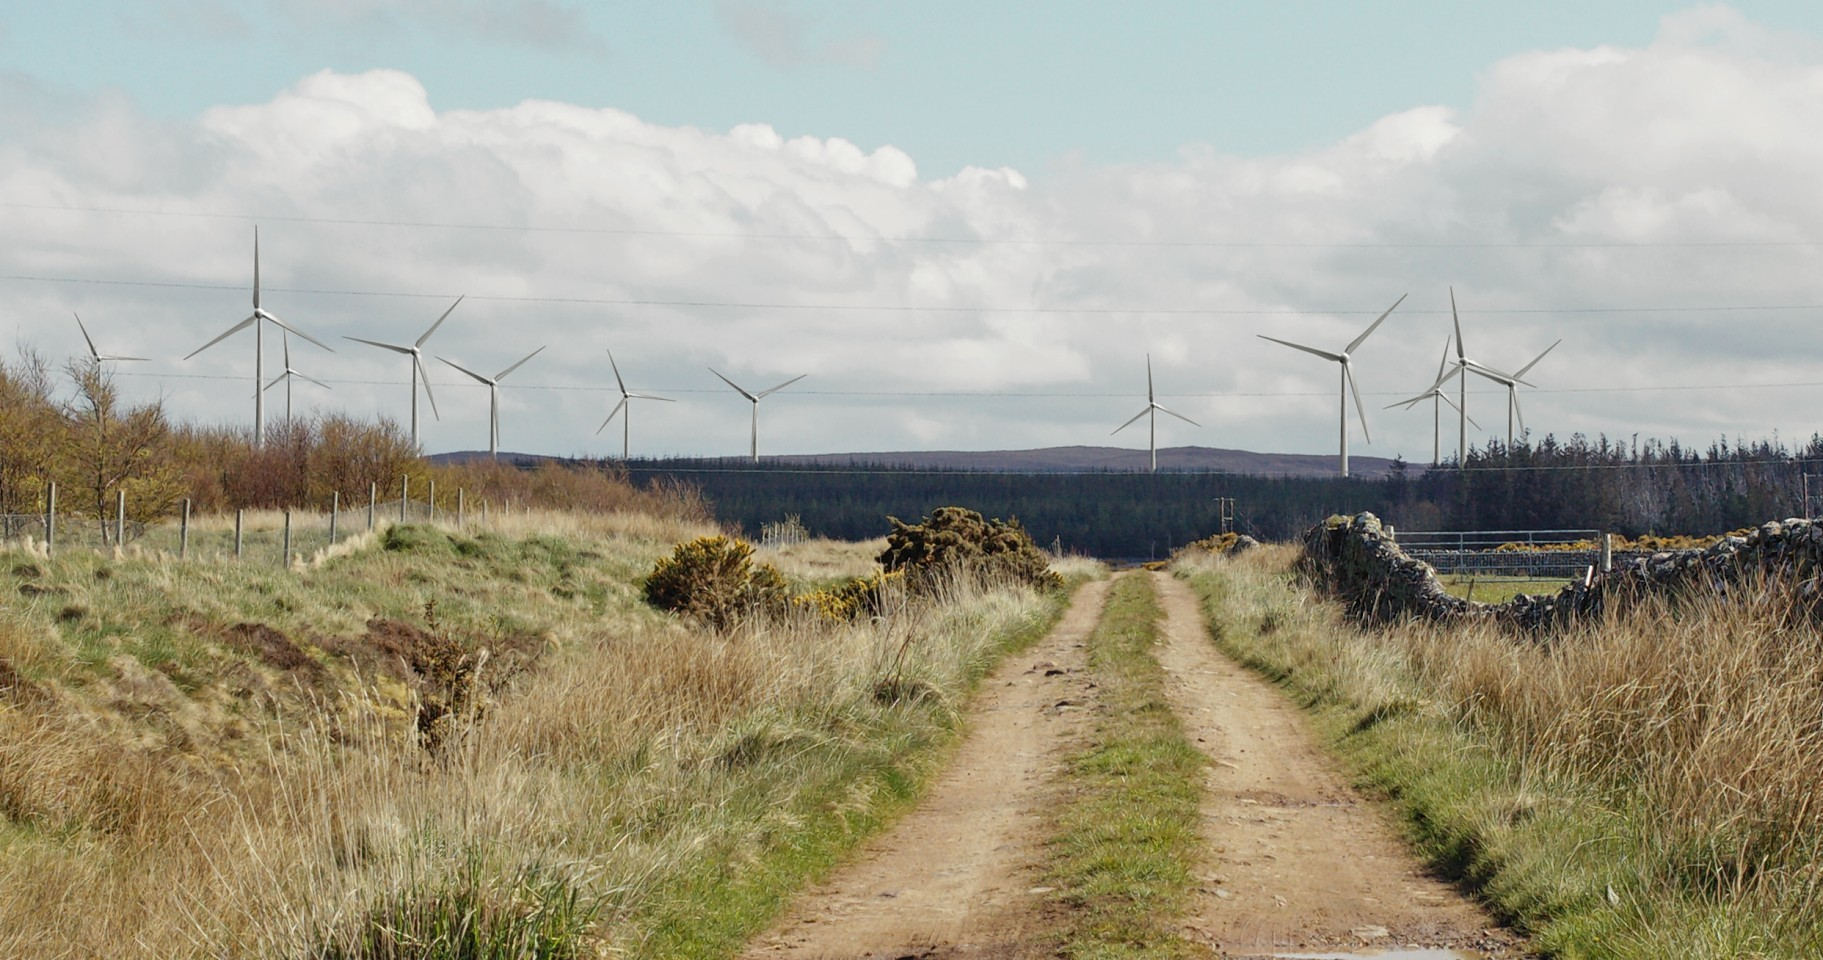 Impression of Limekiln Windfarm